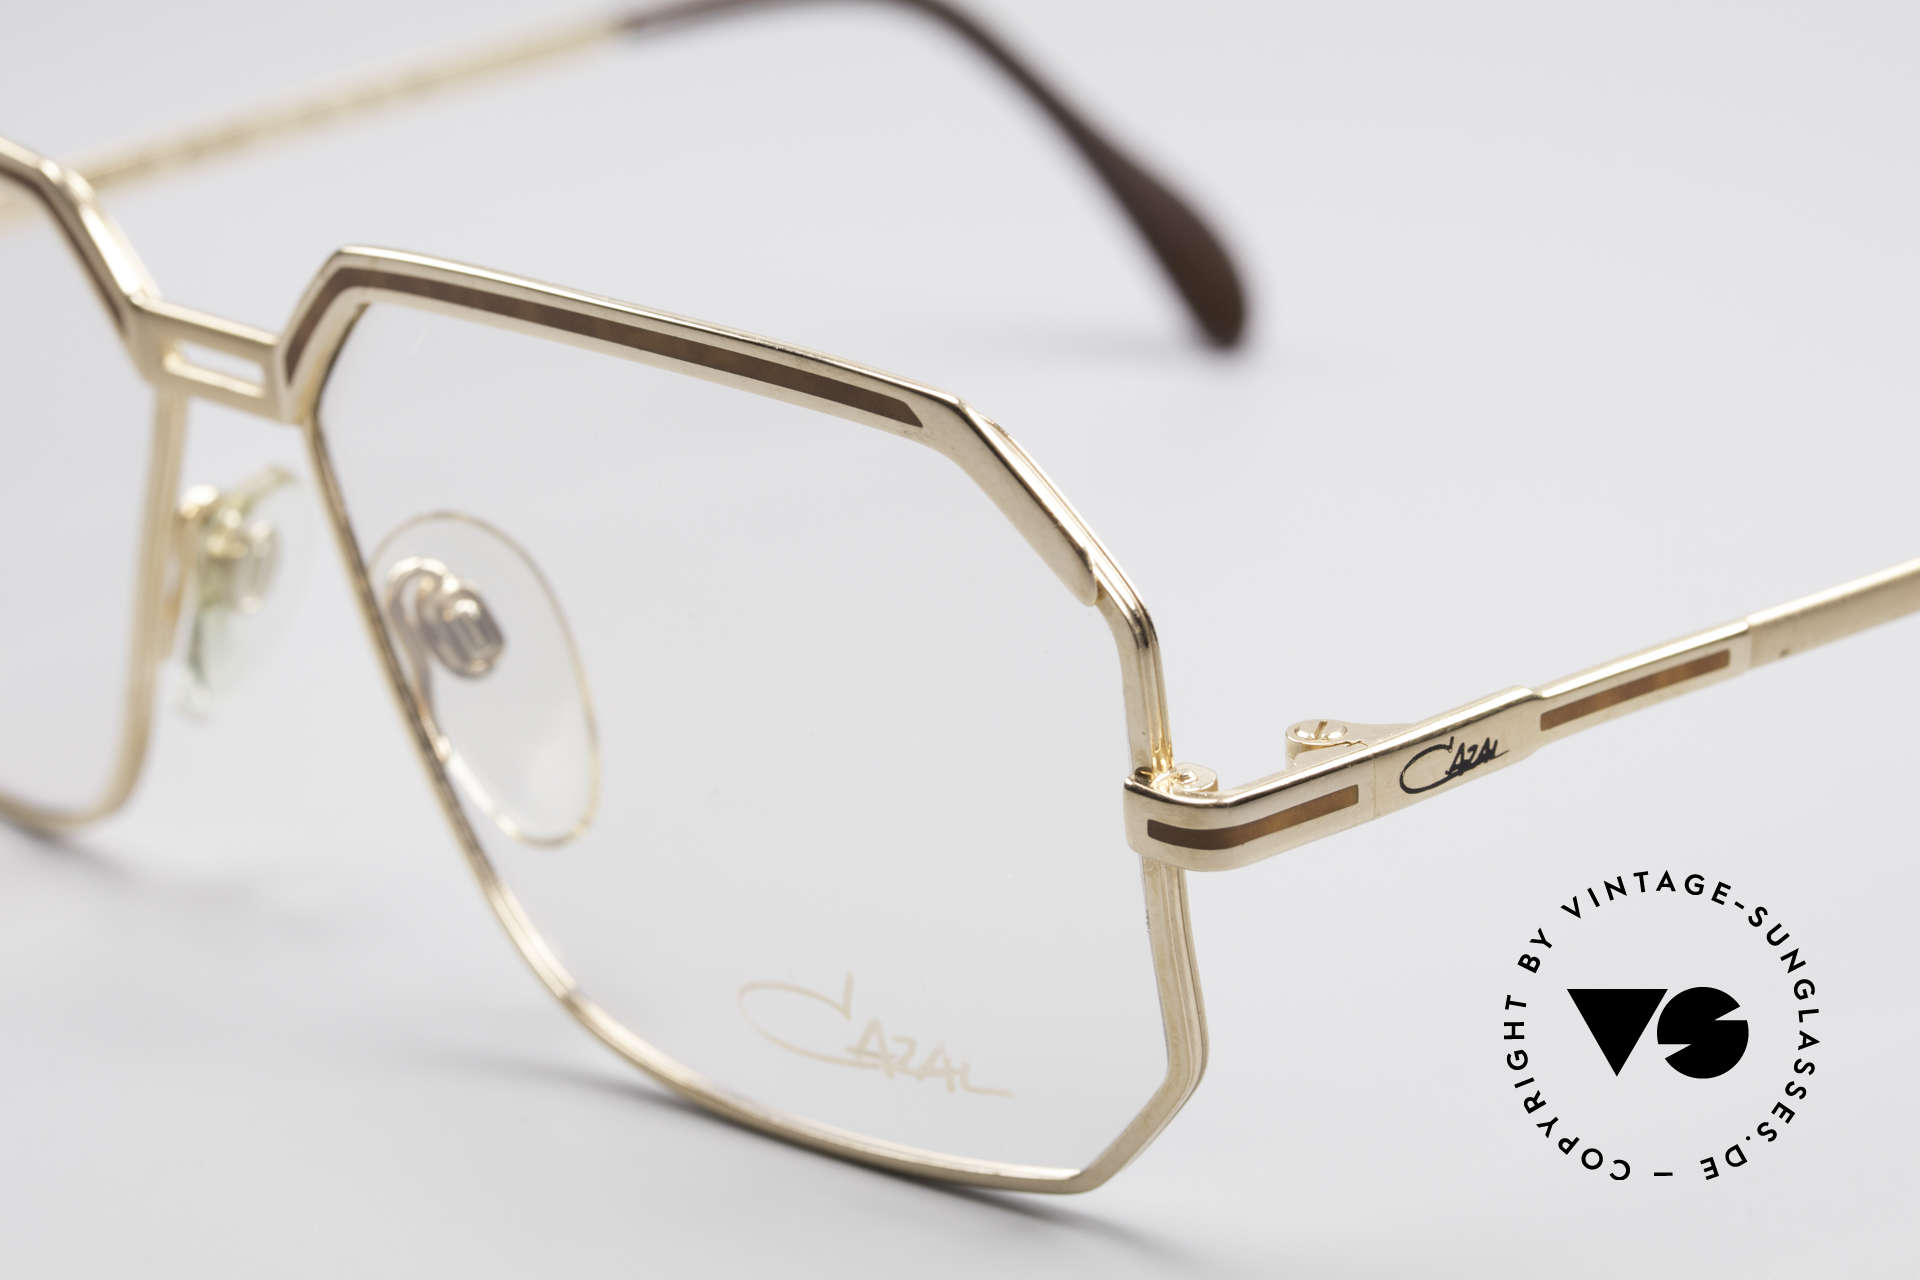 Cazal 727 Michail Gorbatschow Glasses, new old stock (like all our vintage Cazals), Made for Men